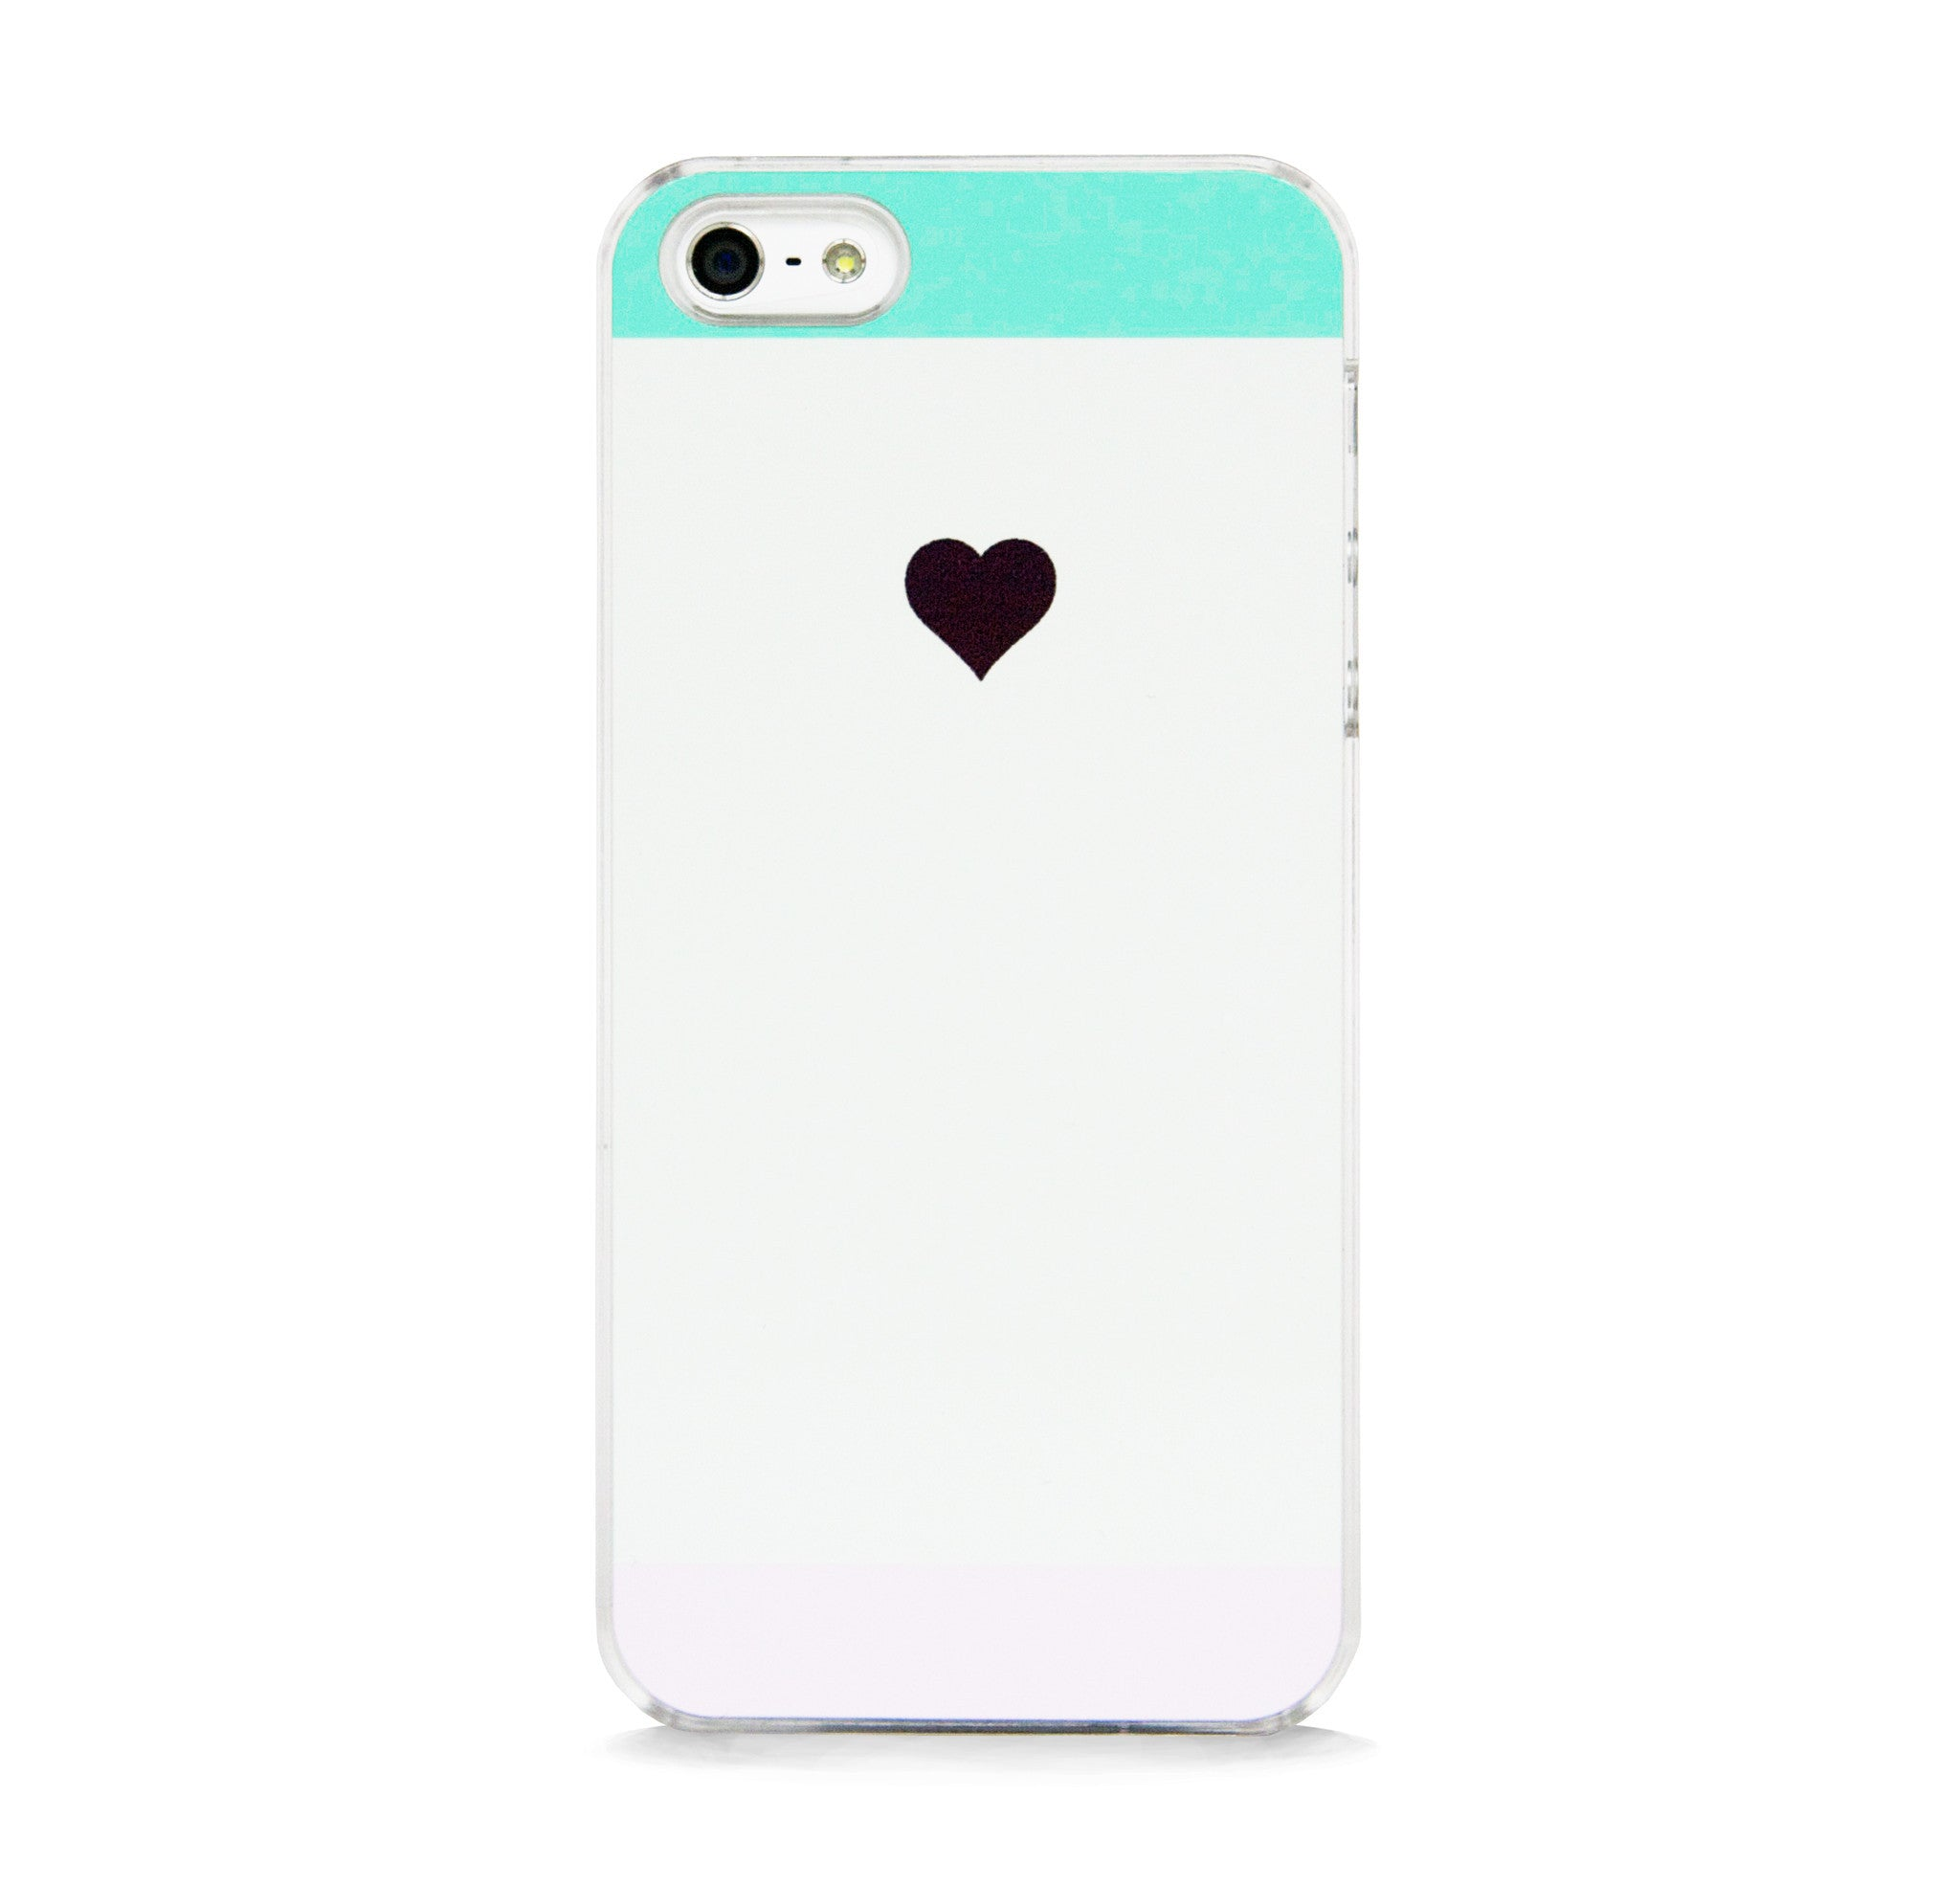 SYMBOL HEART COLOR BLOCK FOR IPHONE 5/5S, IPHONE SE